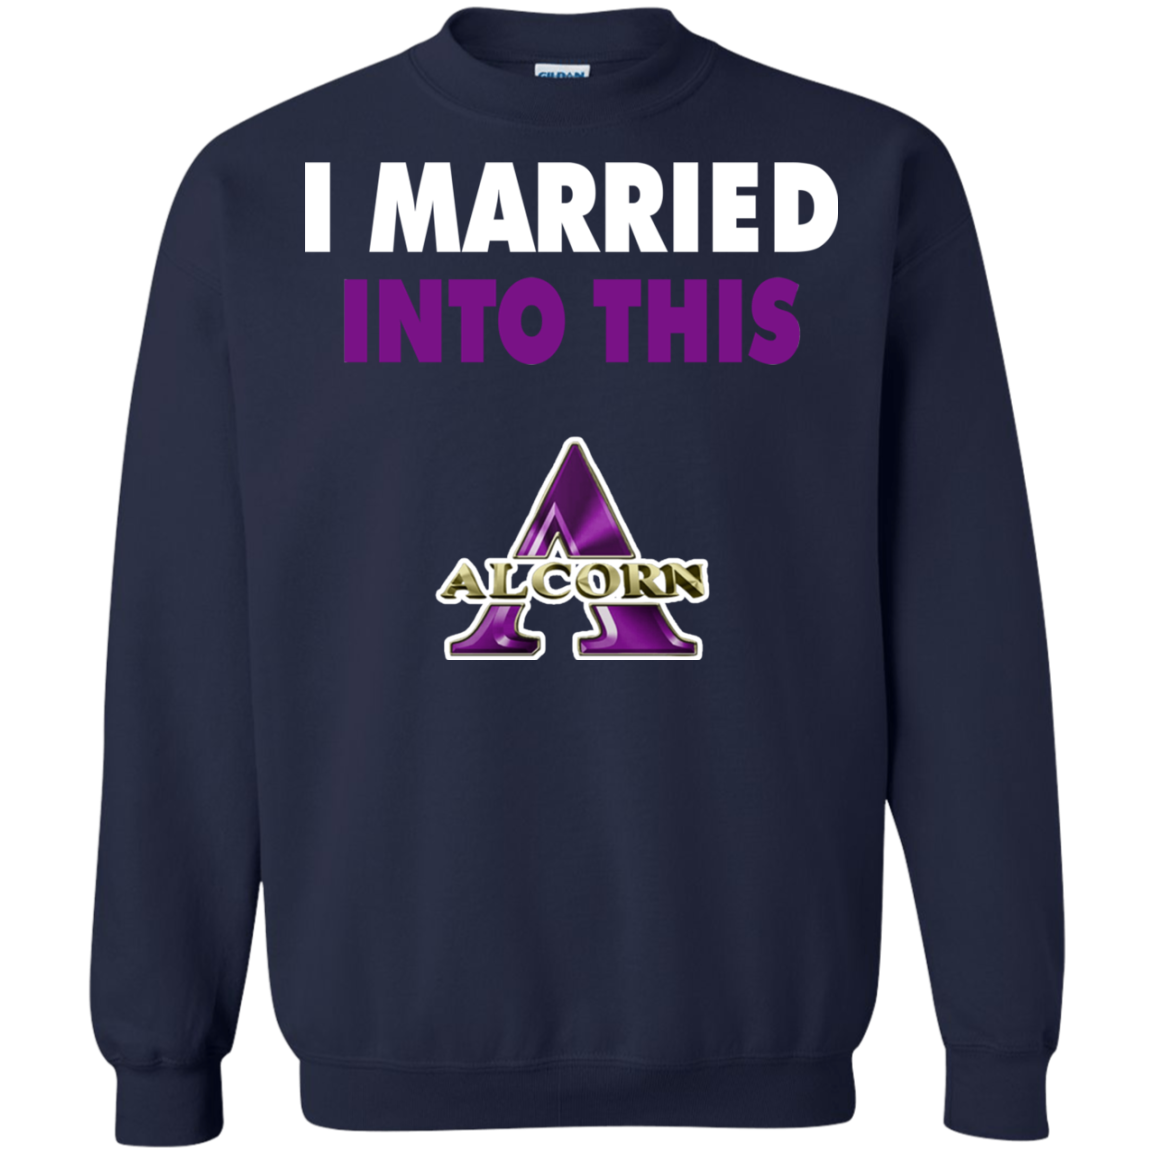 info for 927db bd67d Alcorn State Braves T shirts I Married Into This Hoodies ...